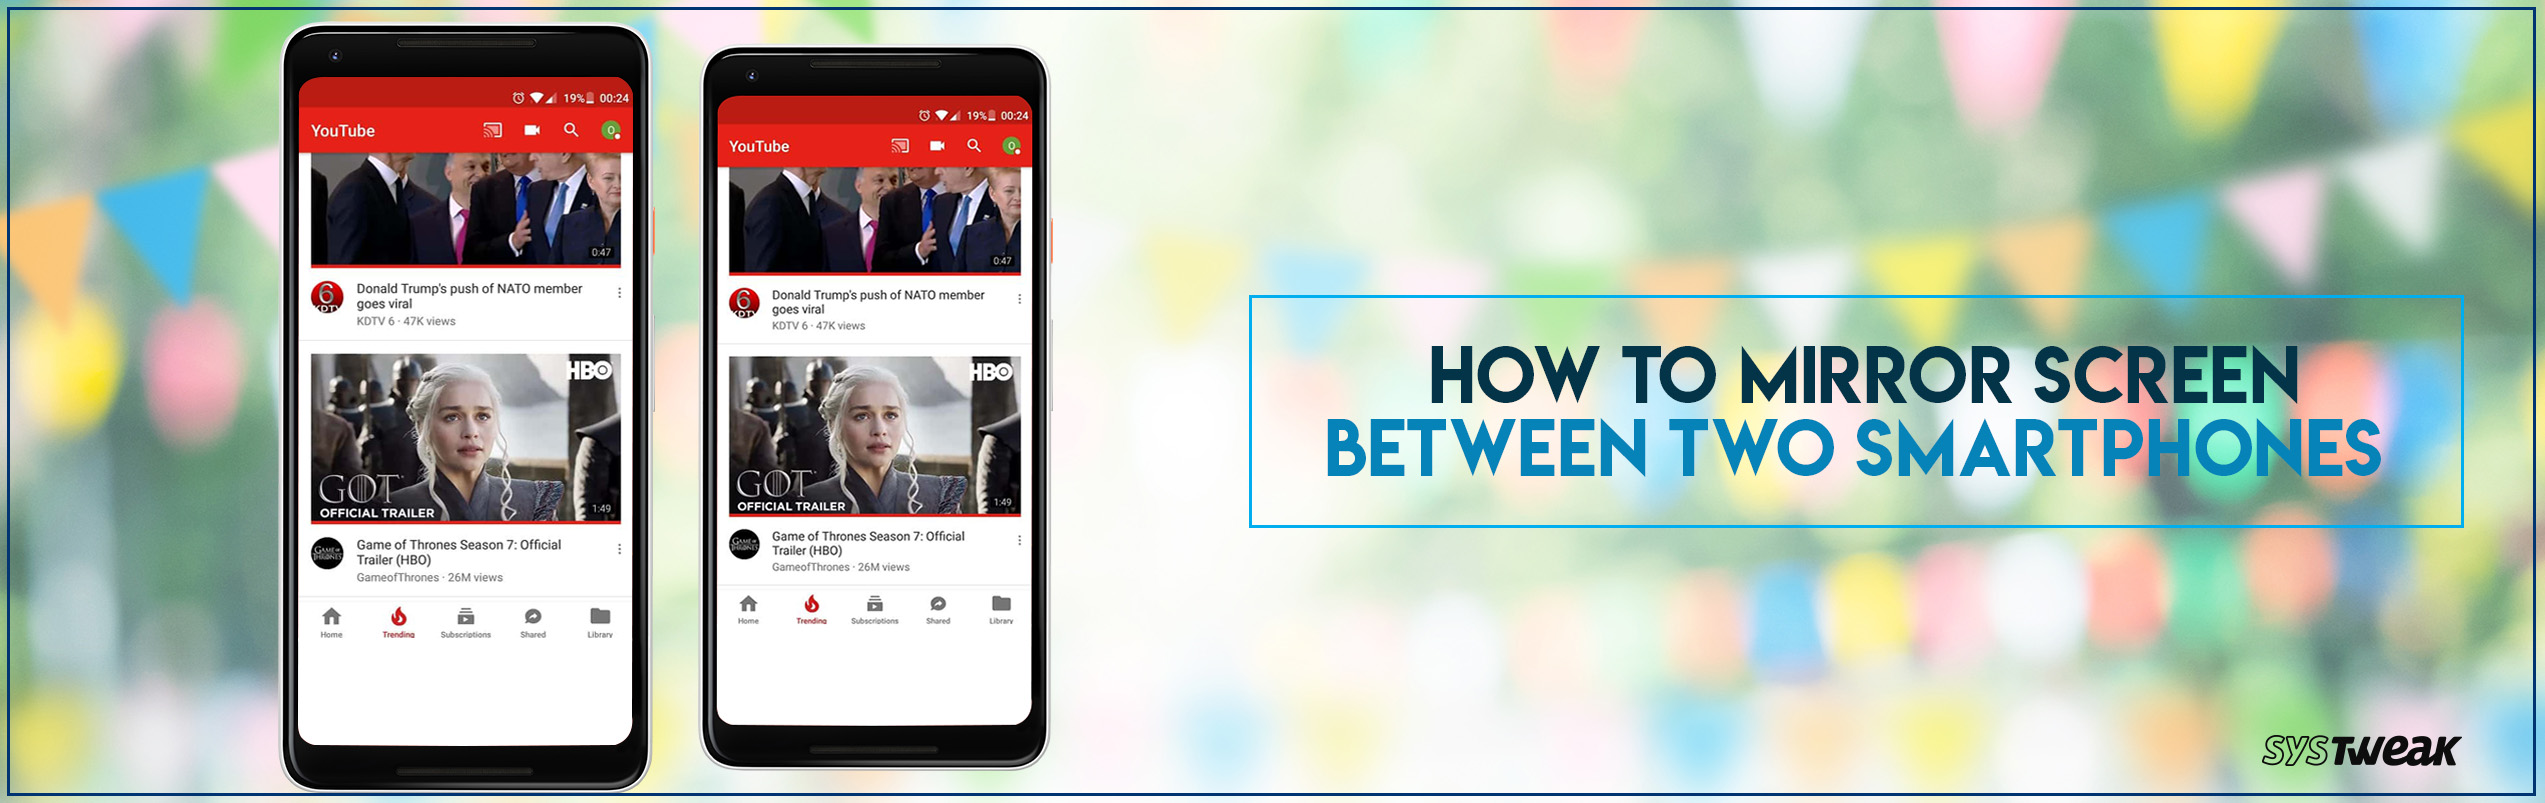 How to Mirror Screen Between Two Smartphones